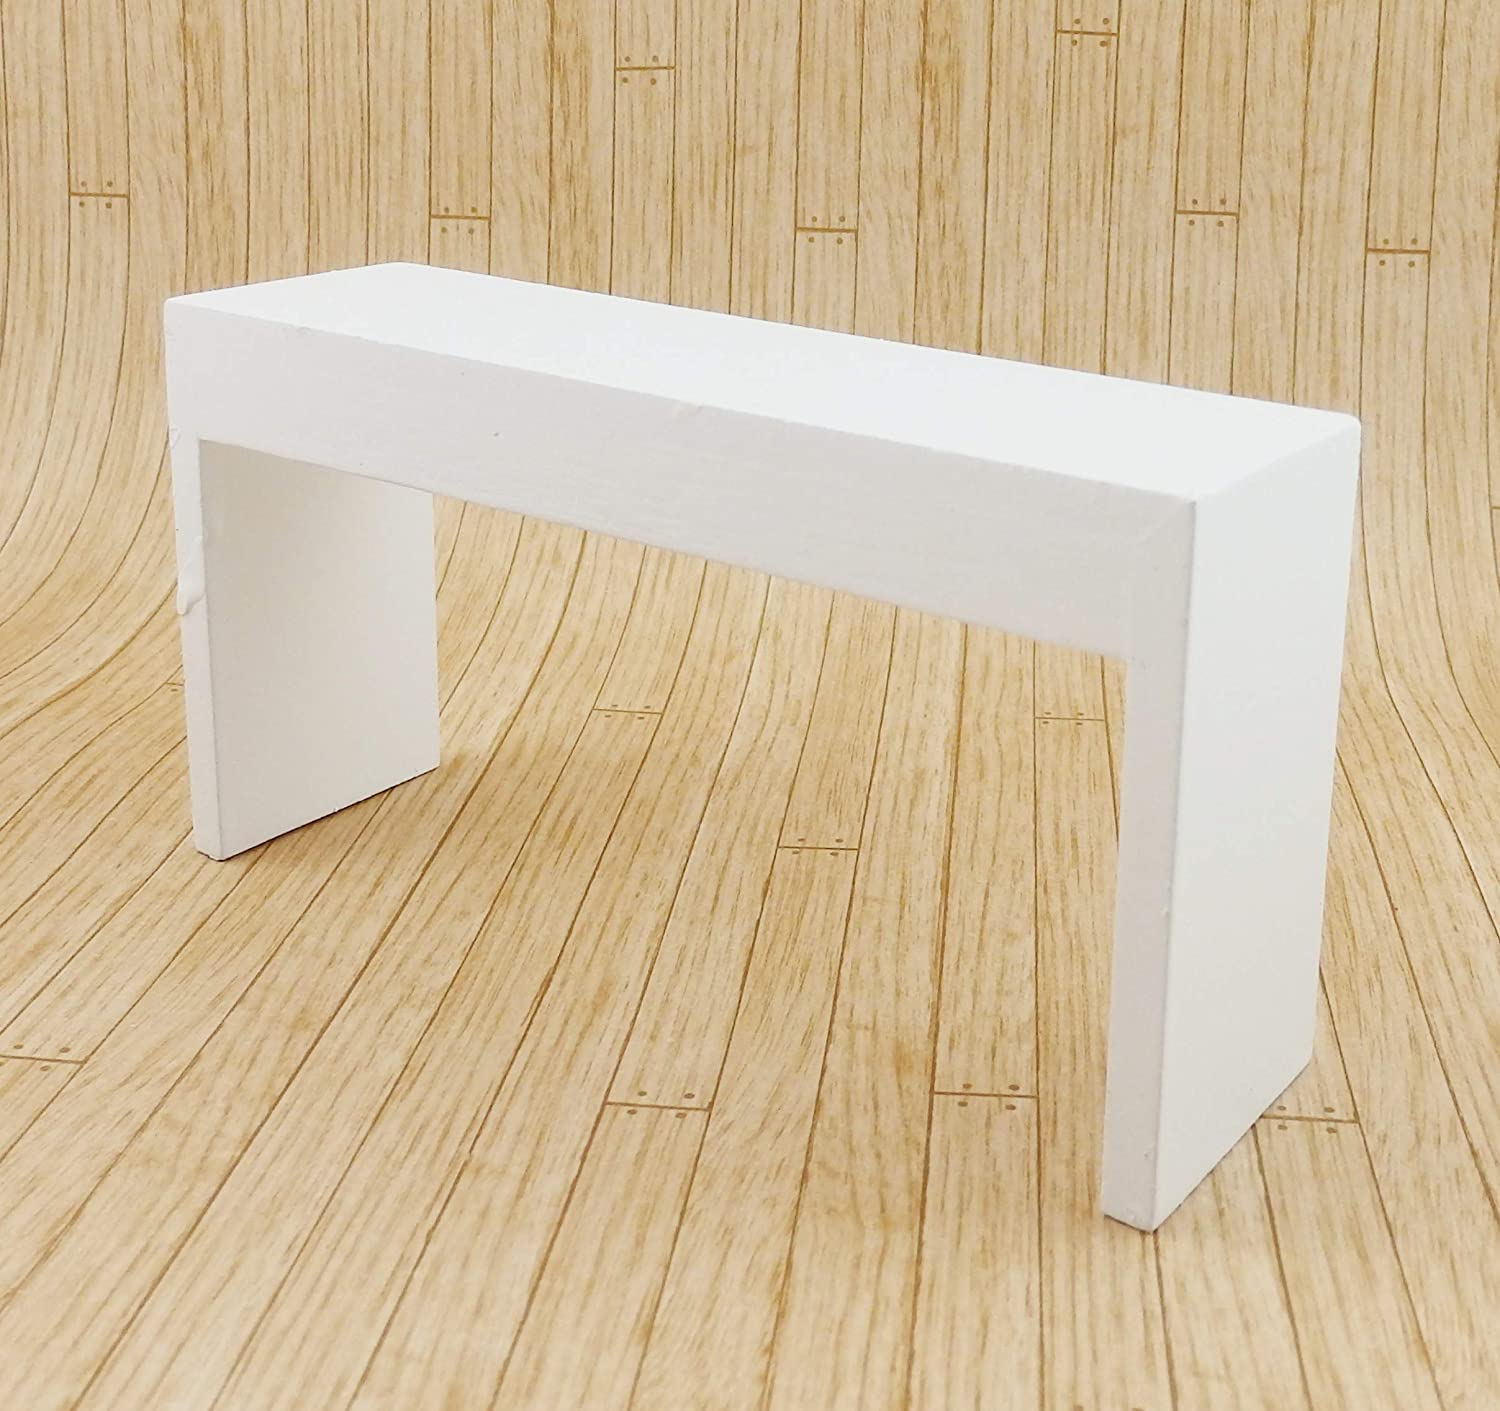 Melody Jane Dolls Houses Modern White Console Table Contemporary 1:12 Furniture